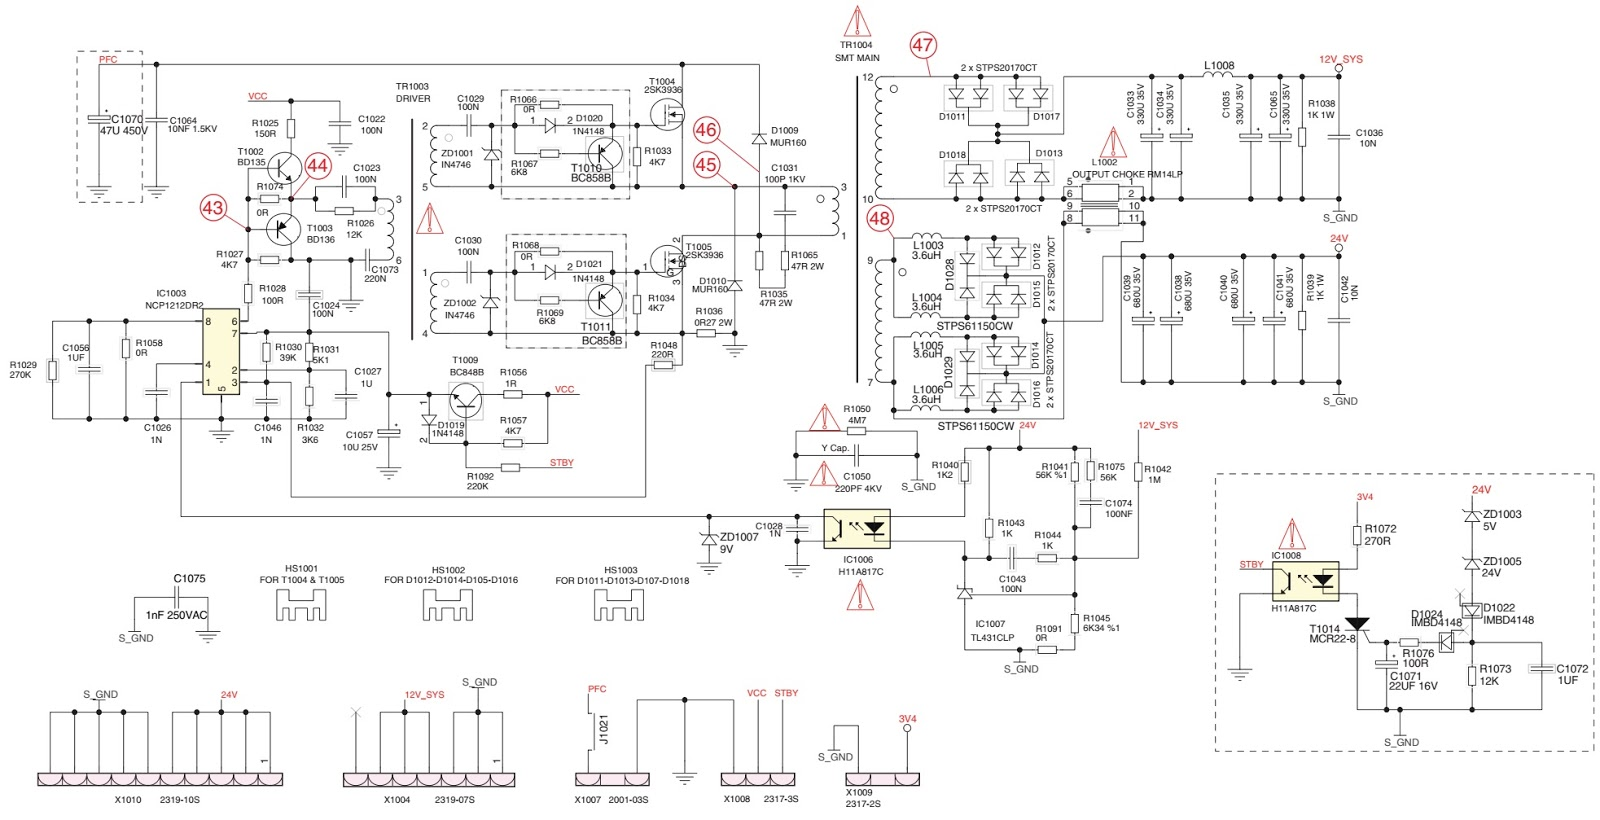 small resolution of grundig lcd tv smps schematics circuit diagrams electronic figure 2 block diagram of an lcd tv power supply